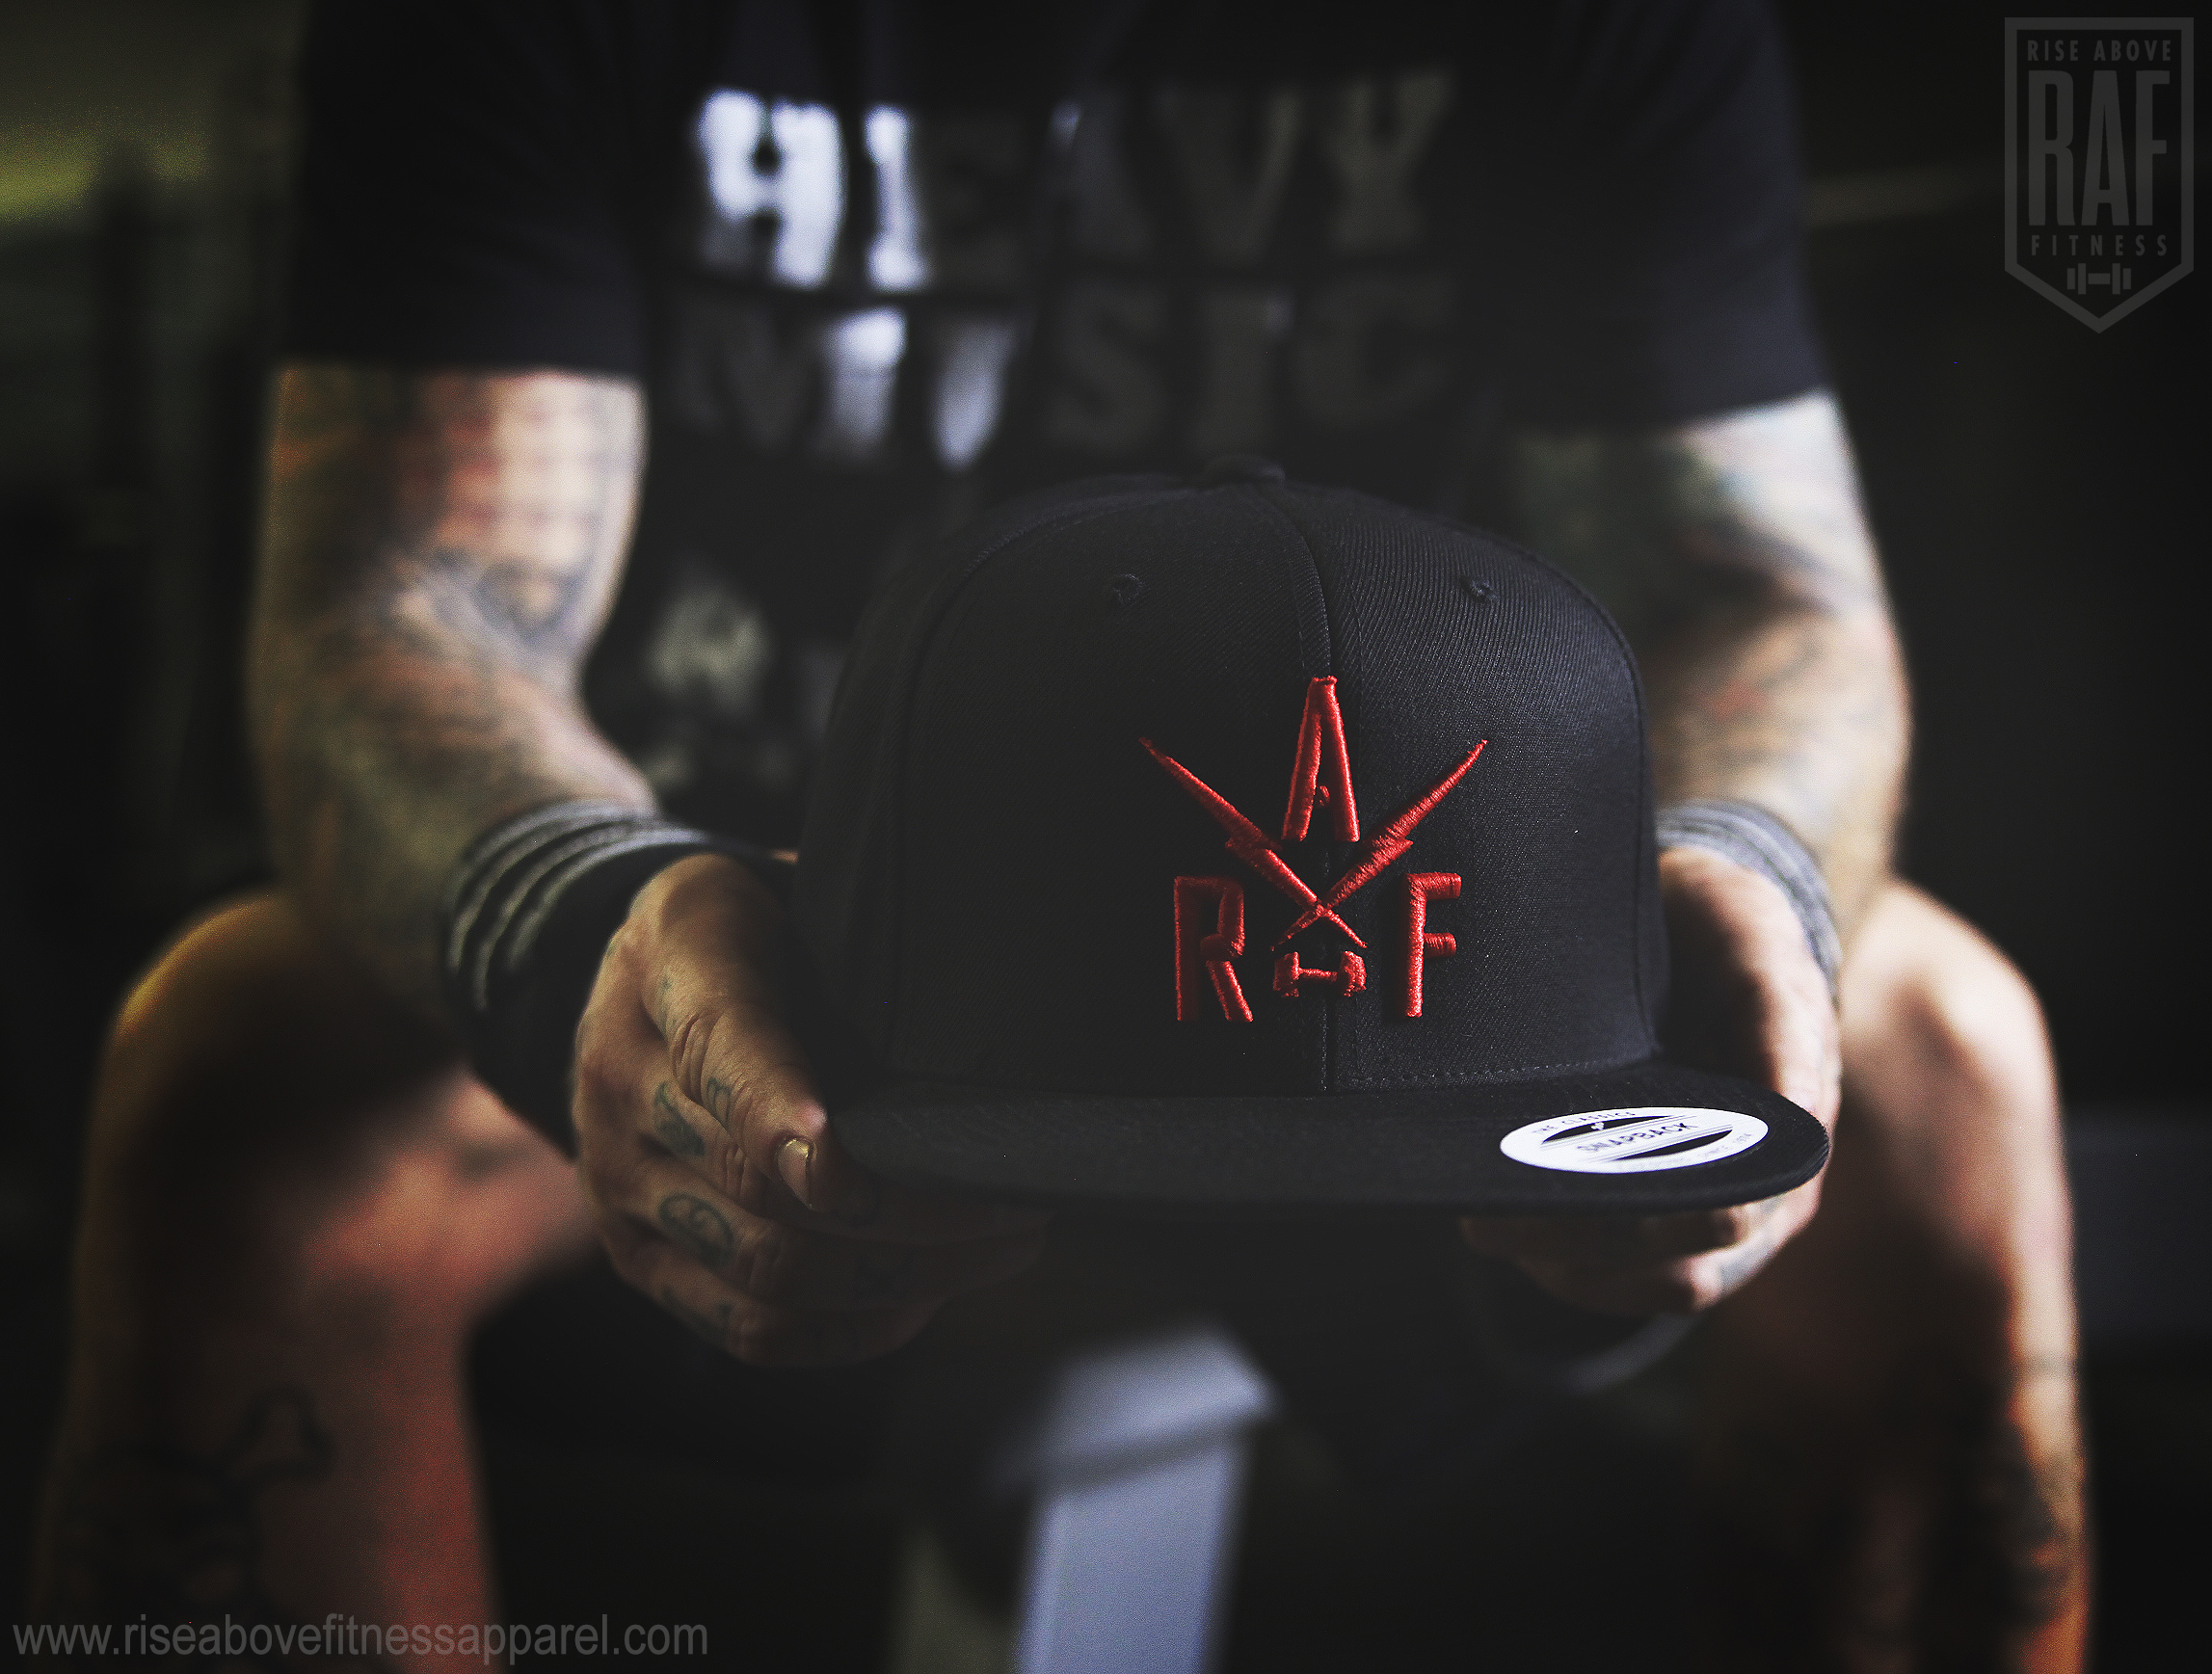 RAF BOLTS Snapback (RED EMBROIDERY) Back_SHOOT.jpg